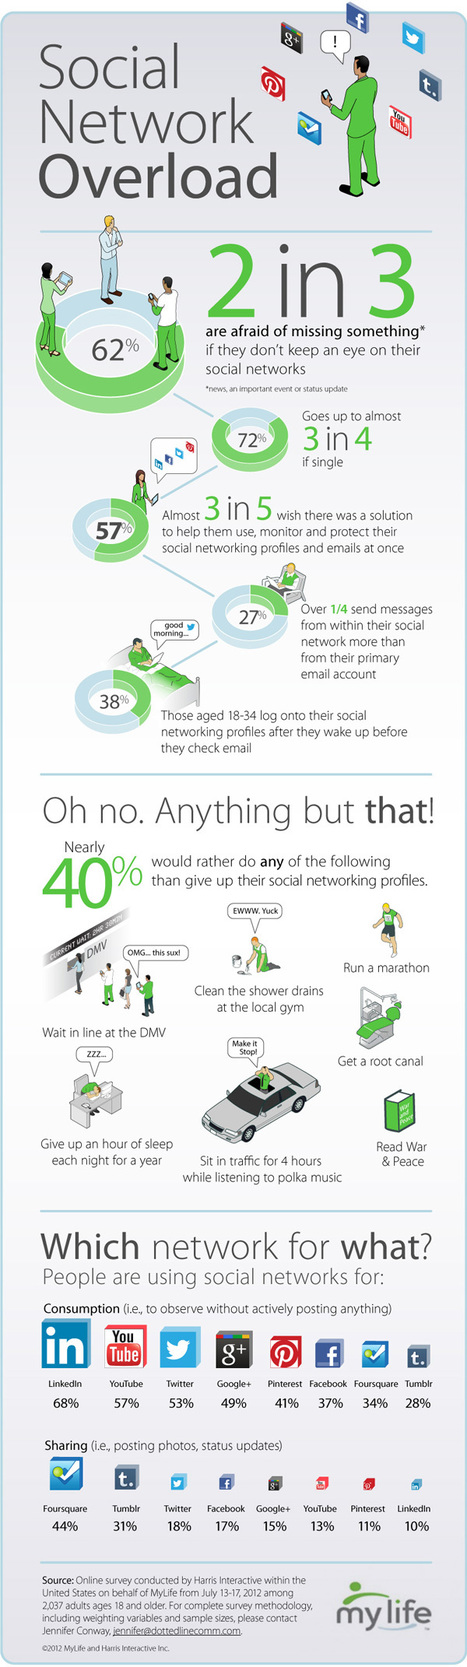 Do You Suffer from Social Network Overload? [INFOGRAPHIC] | Content Curation: Emerging Career | Scoop.it